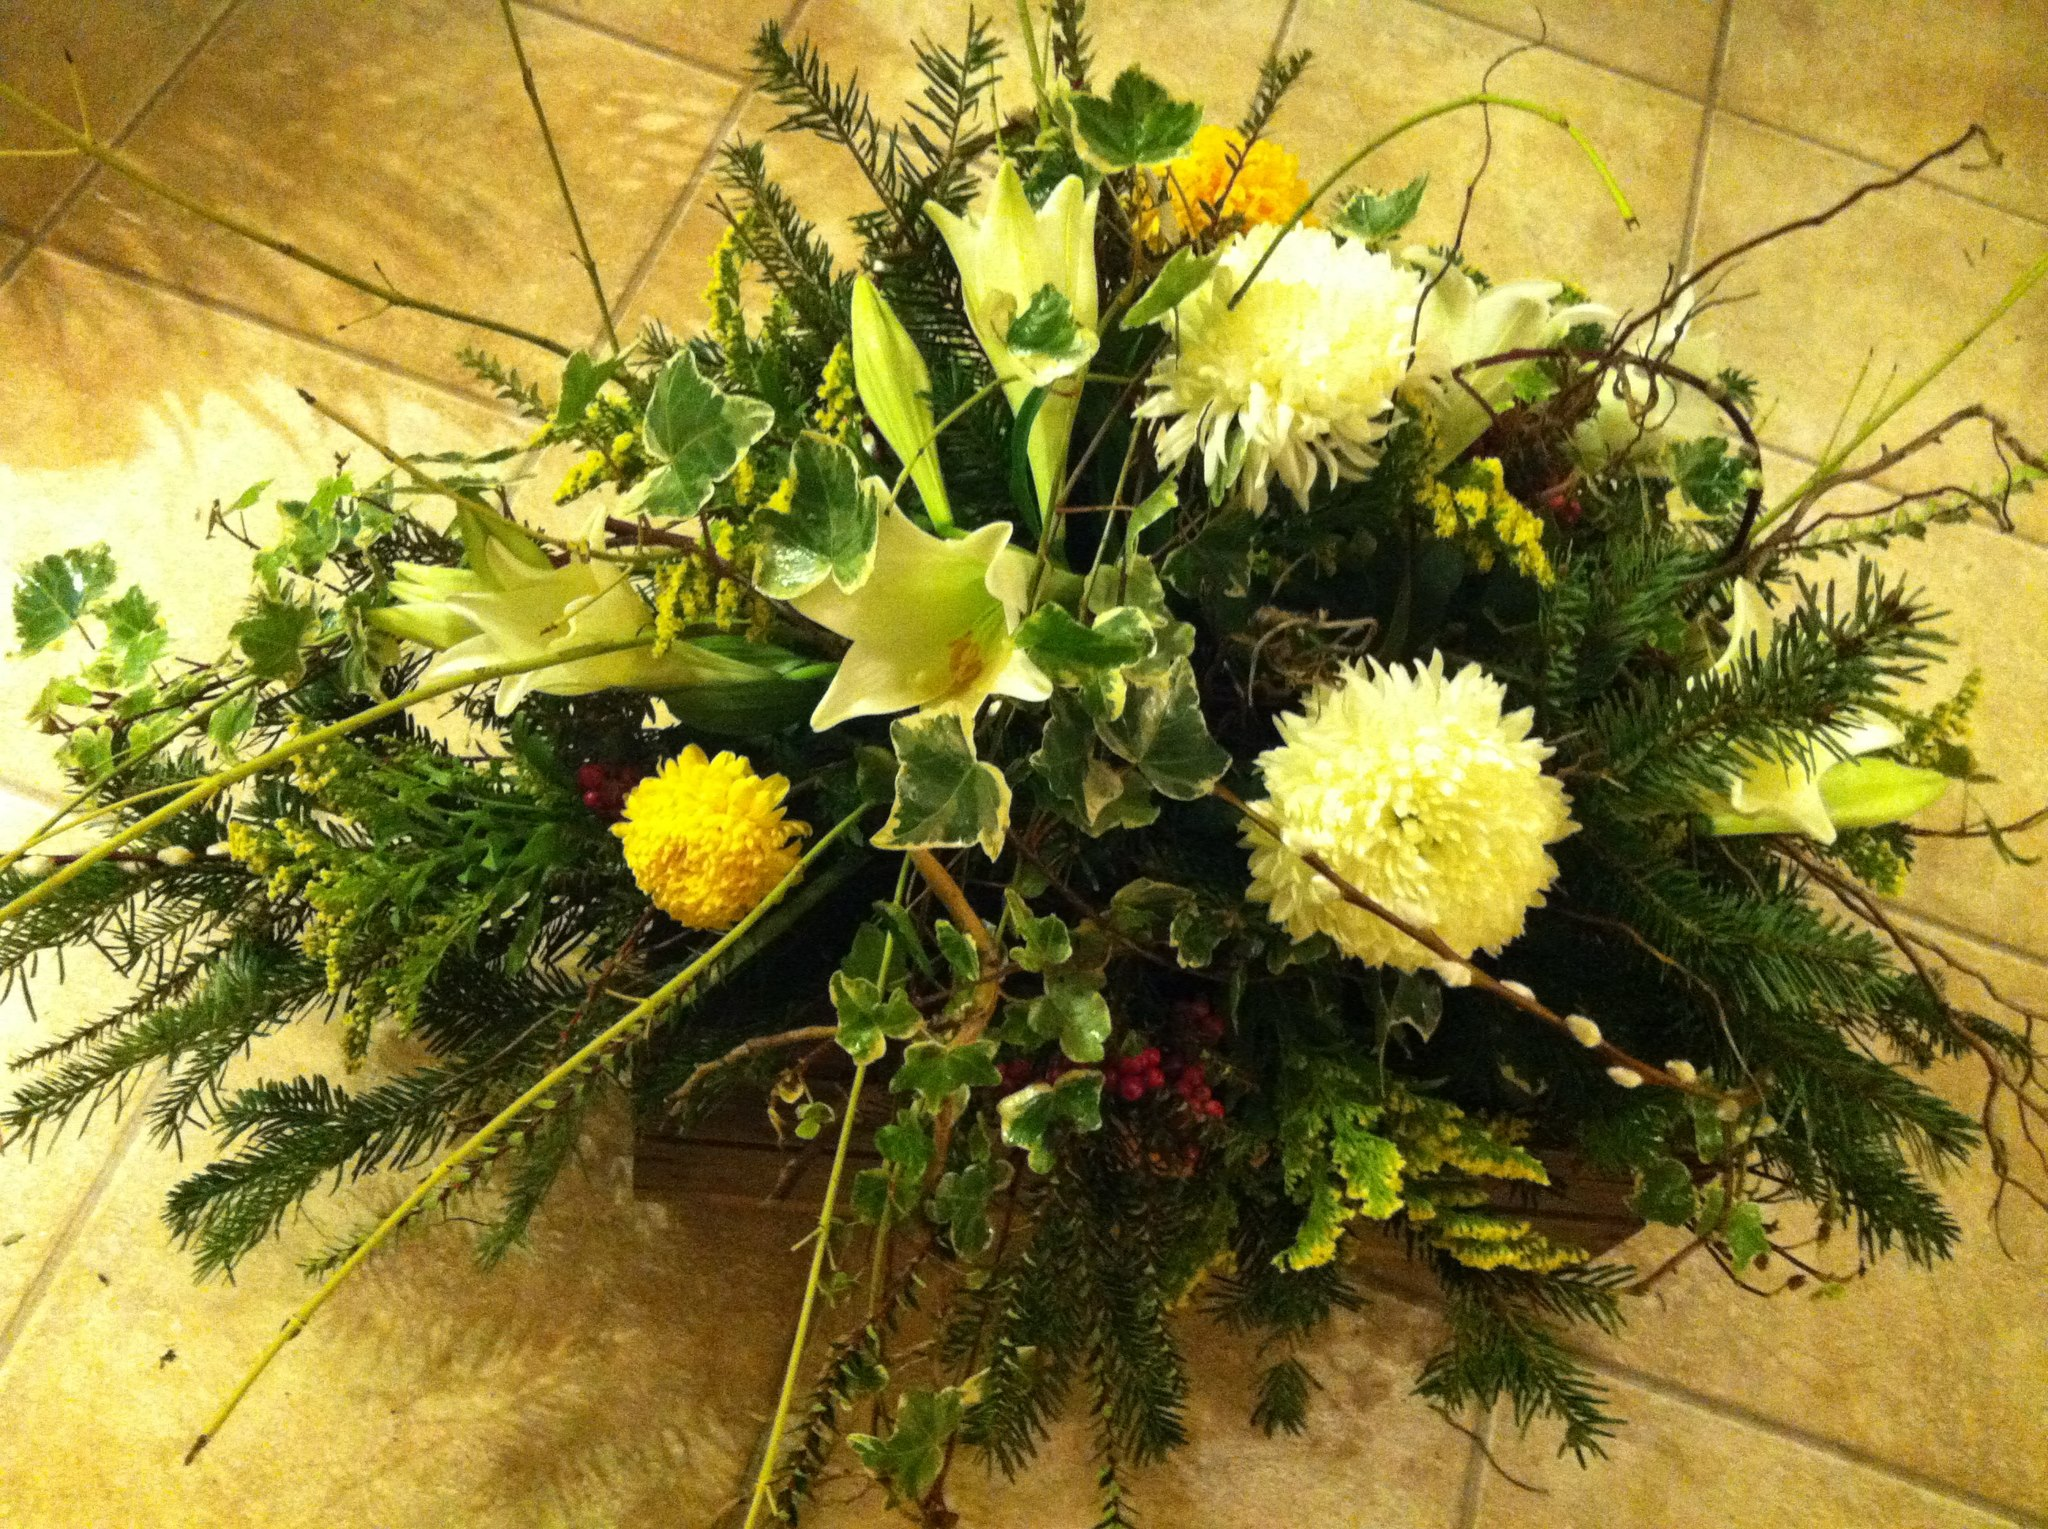 Biodegradable flowers help the environment Funeral Magazine explores